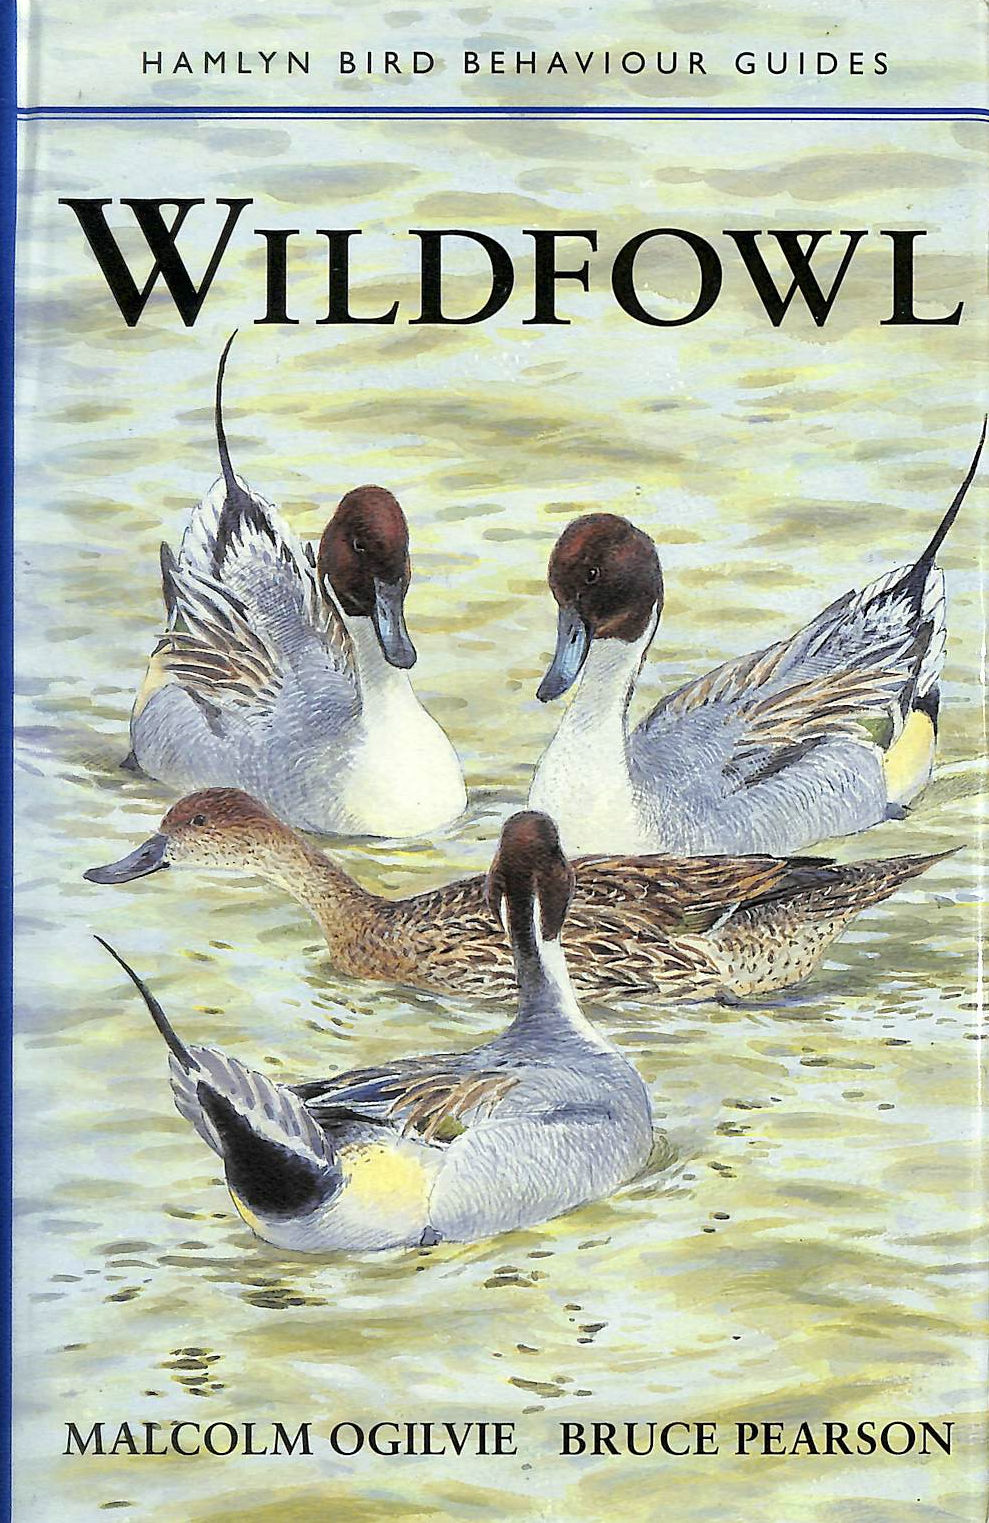 Image for Wildfowl (Hamlyn Bird Behaviour Guides)